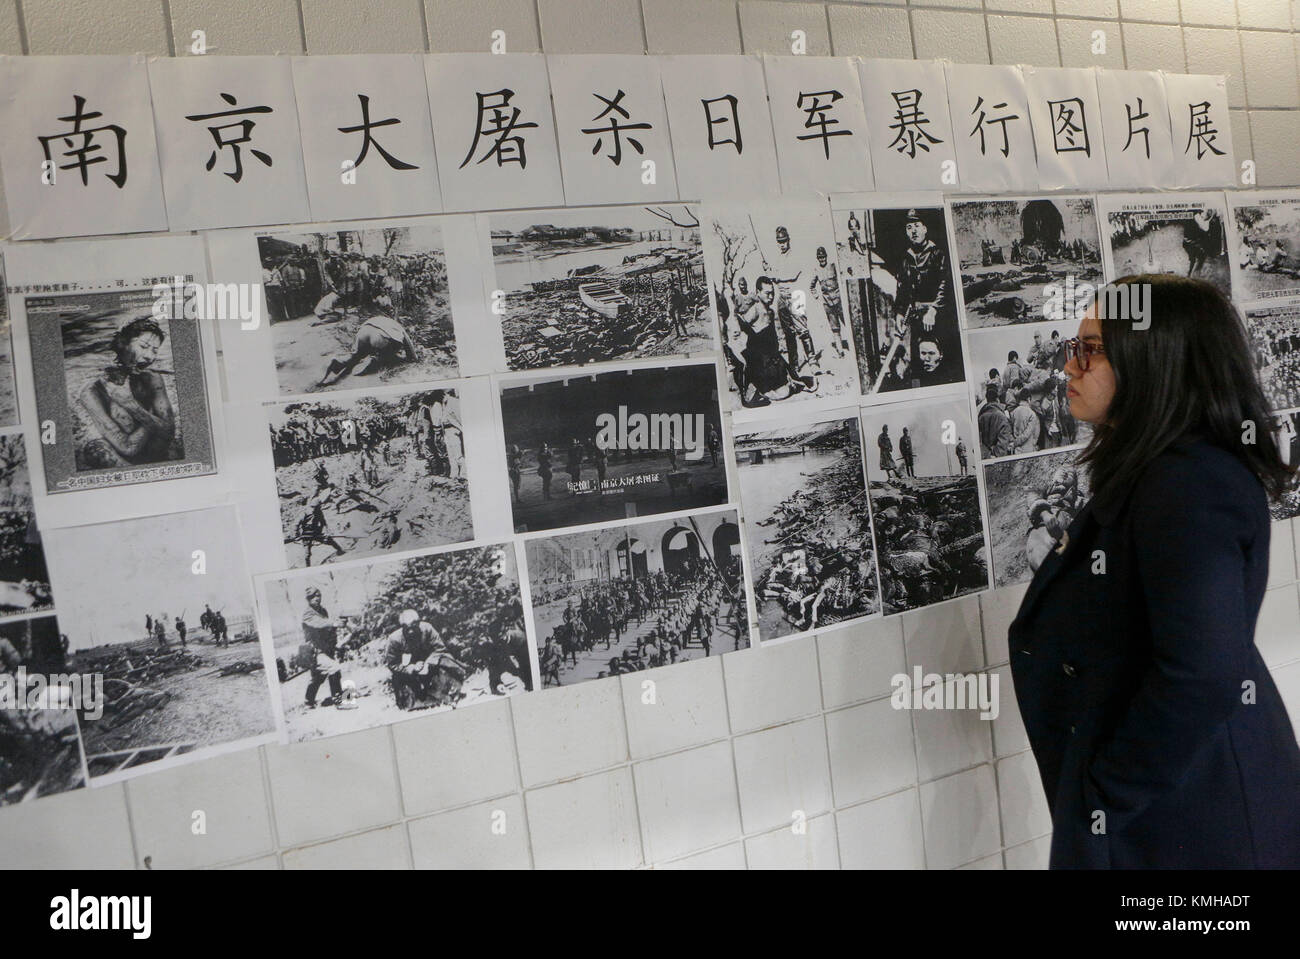 Vancouver. 12th Dec, 2017. A resident watches the historical photos during the mourning ceremony of the Nanjing - Stock Image